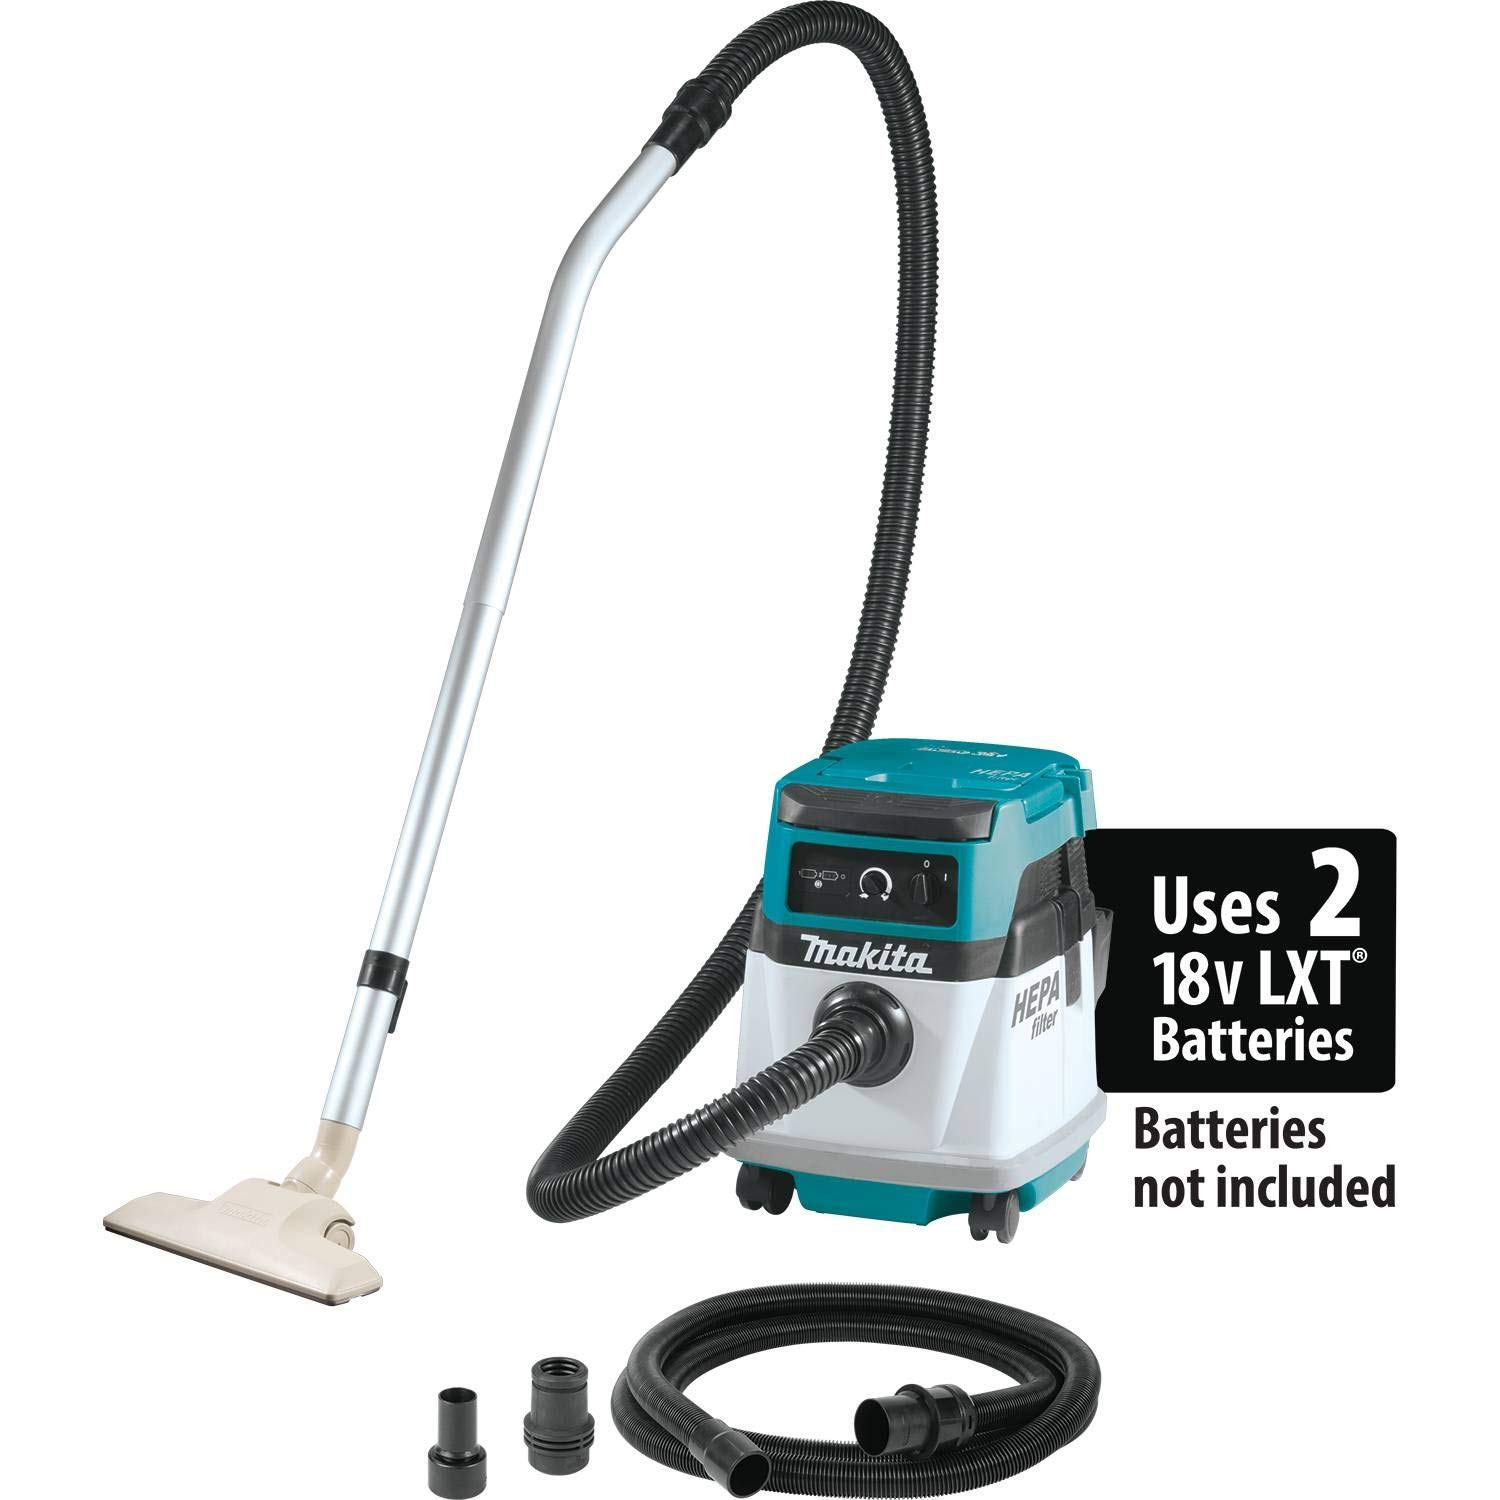 Makita XCV13Z 18V X2 LXT Lithium-Ion (36V) Cordless/Corded 4 Gallon HEPA Filter Dry Dust Extractor/Vacuum, Tool Only by Makita